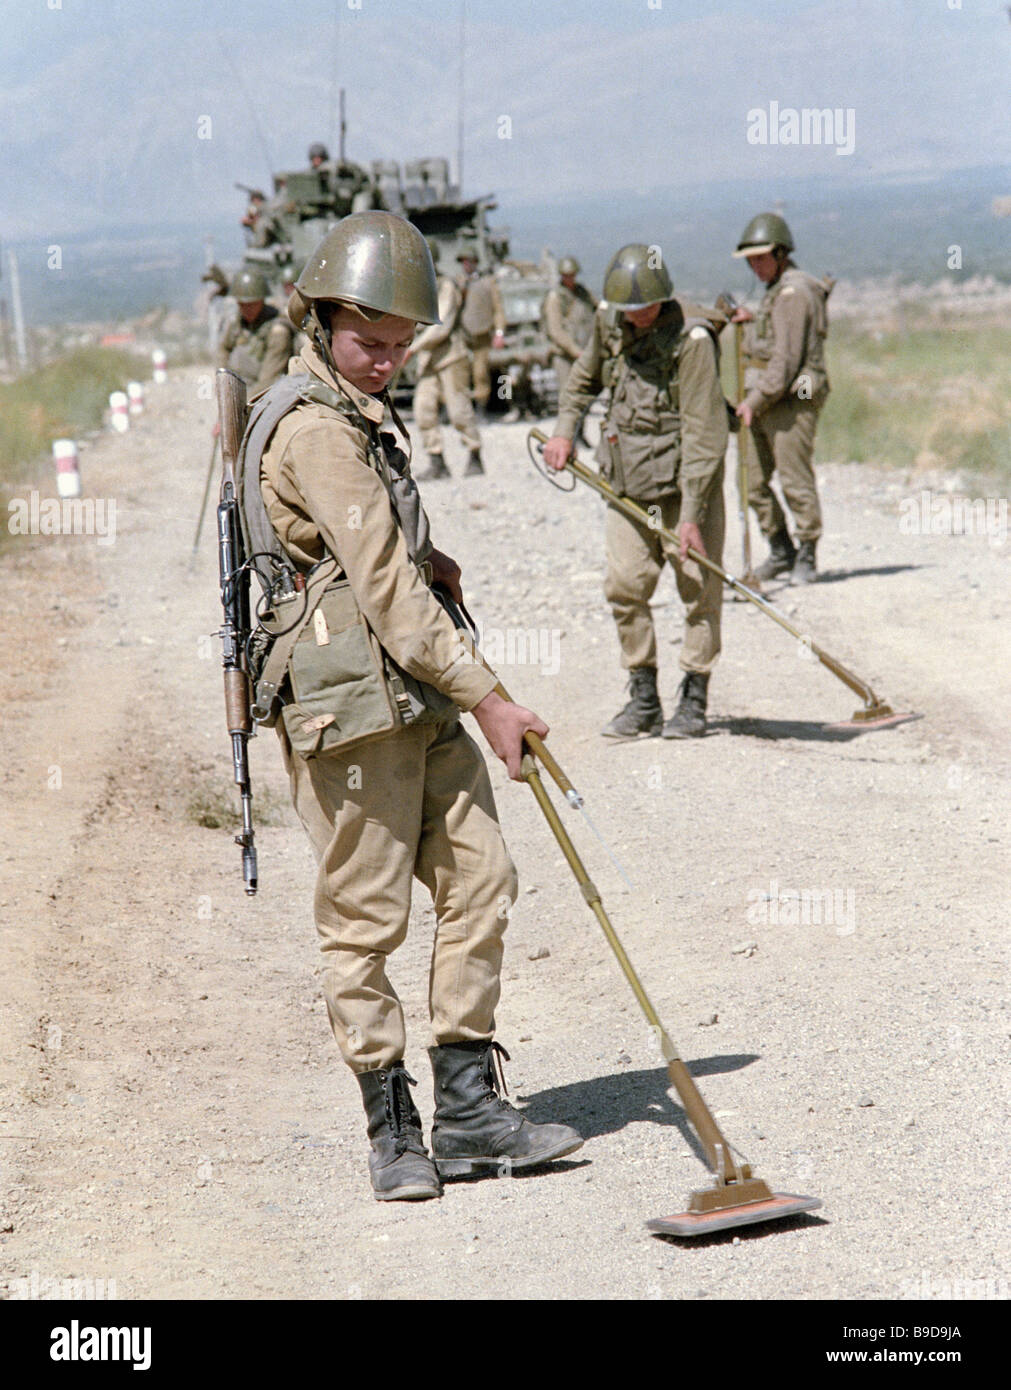 Soviet Afghanistan war - Page 6 Soviet-soldiers-search-for-landmines-on-a-road-in-afghanistan-B9D9JA